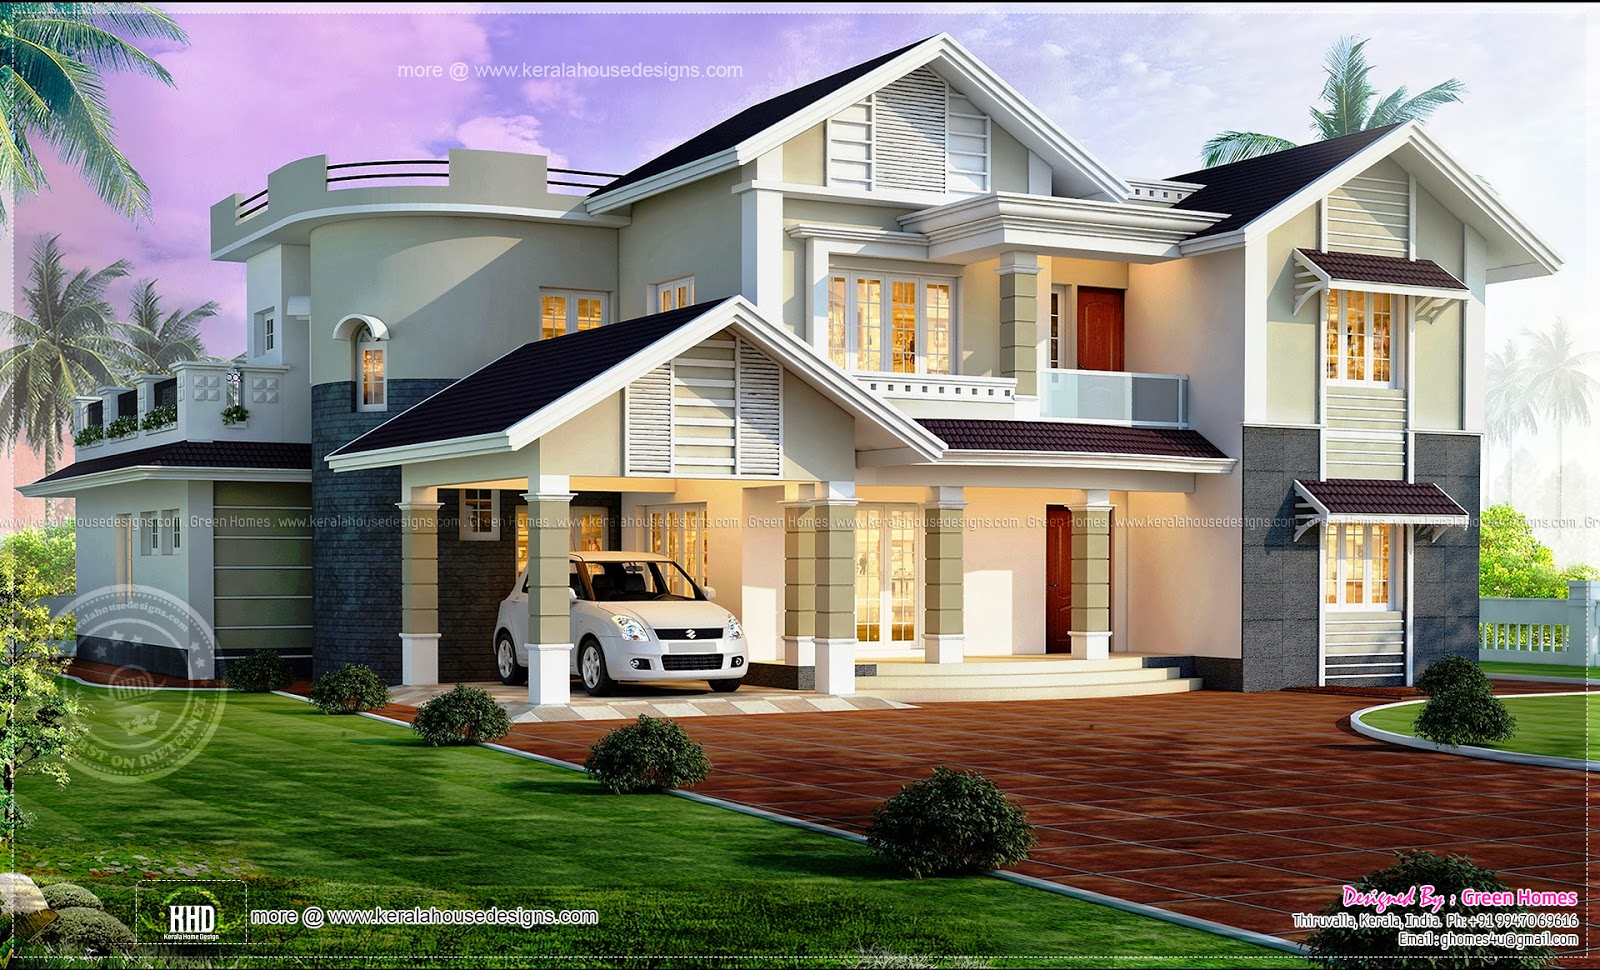 Beautiful 4 bedroom house exterior elevation kerala home for 4 bedroom house plans kerala style architect